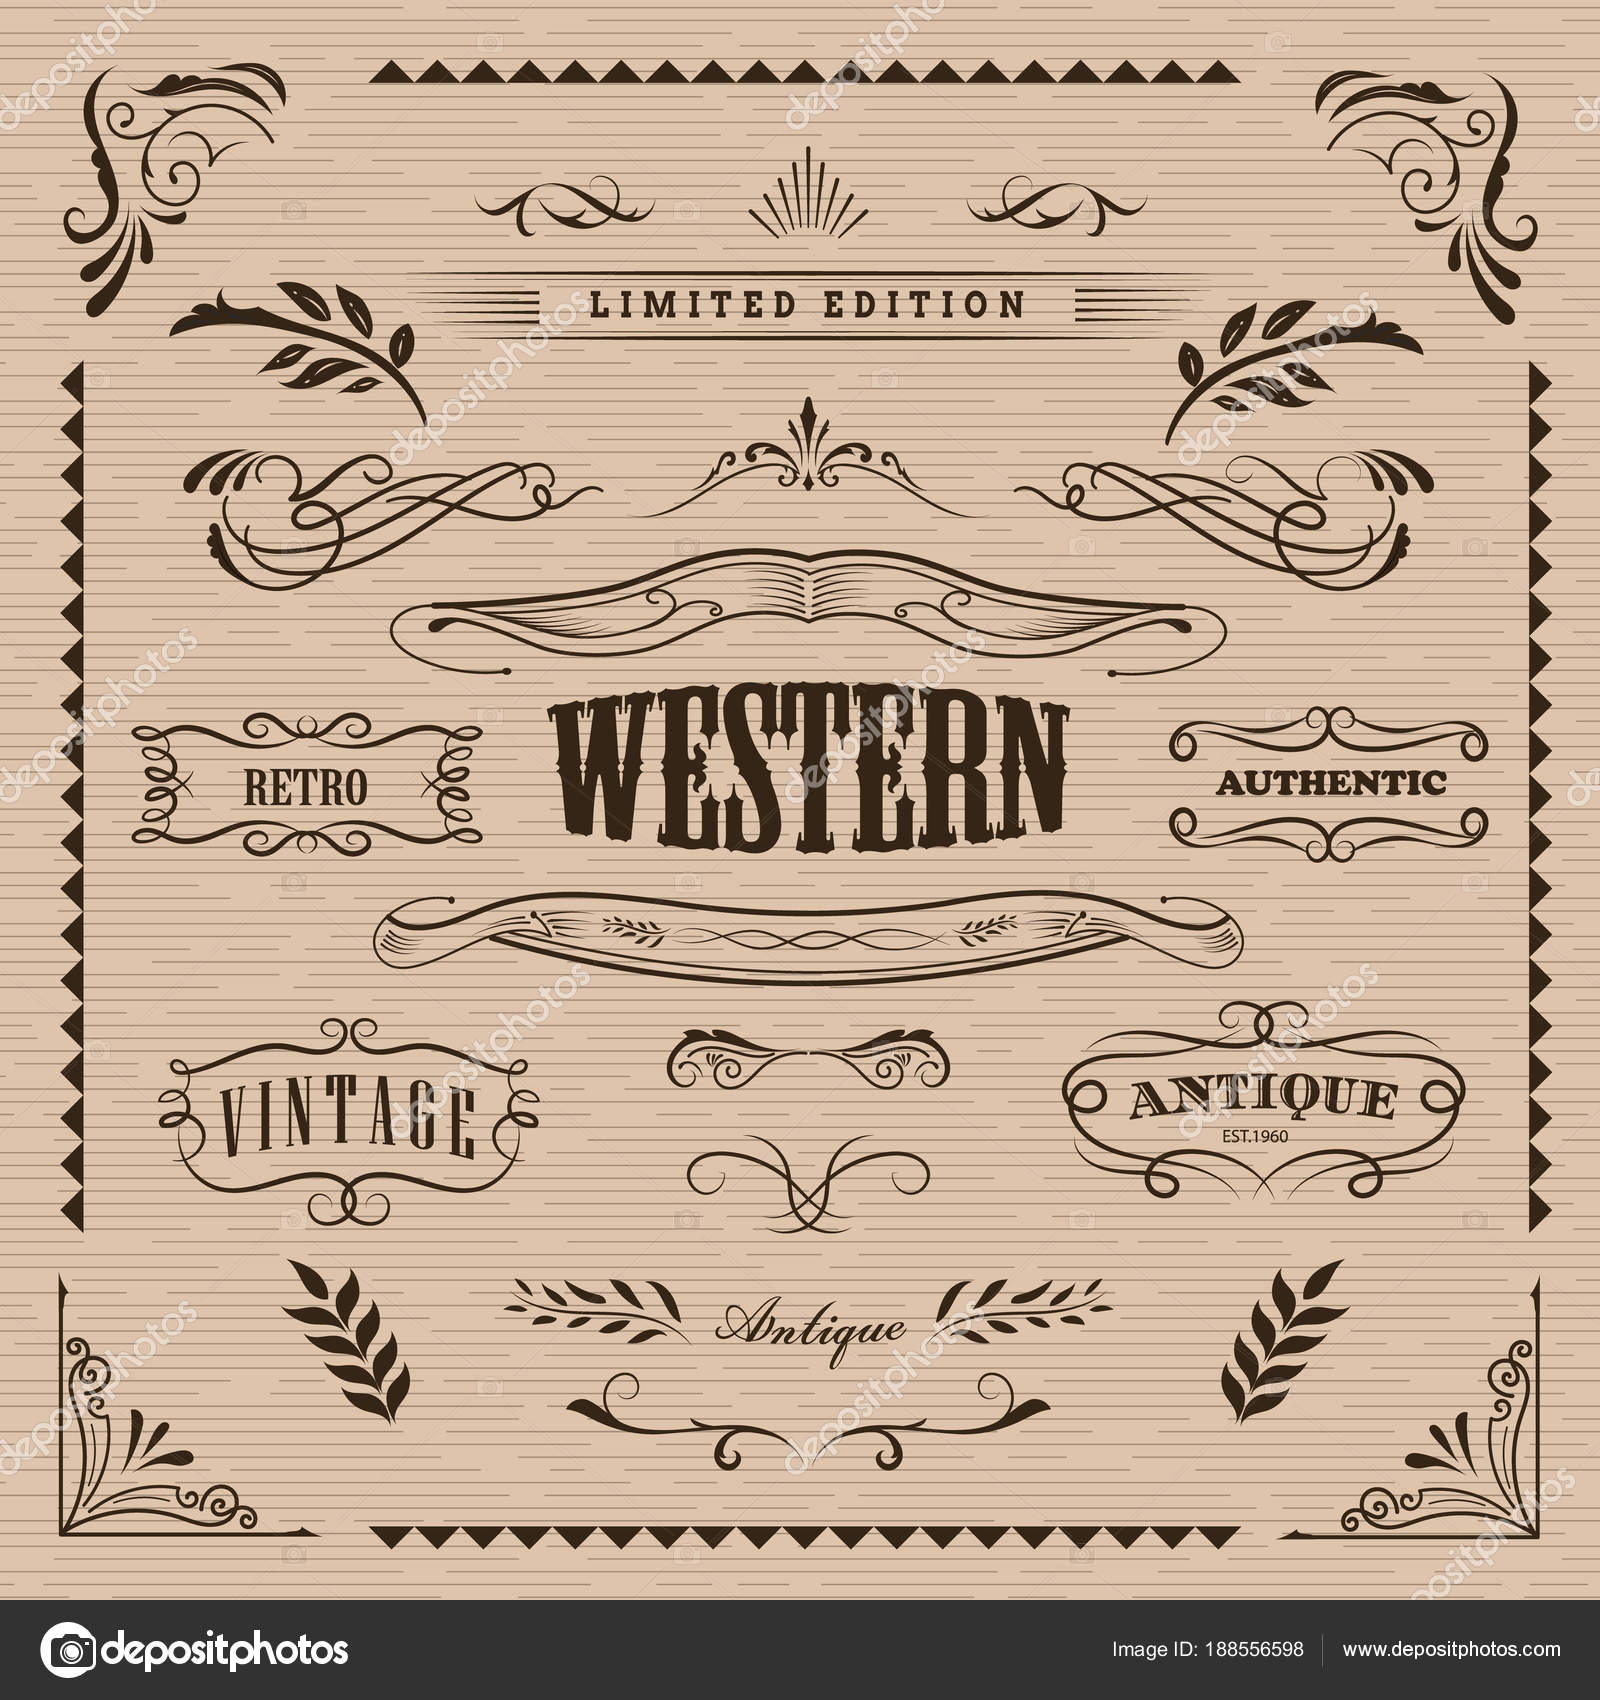 Western frame hand drawn banners vintage badge vector — Stock Vector ...